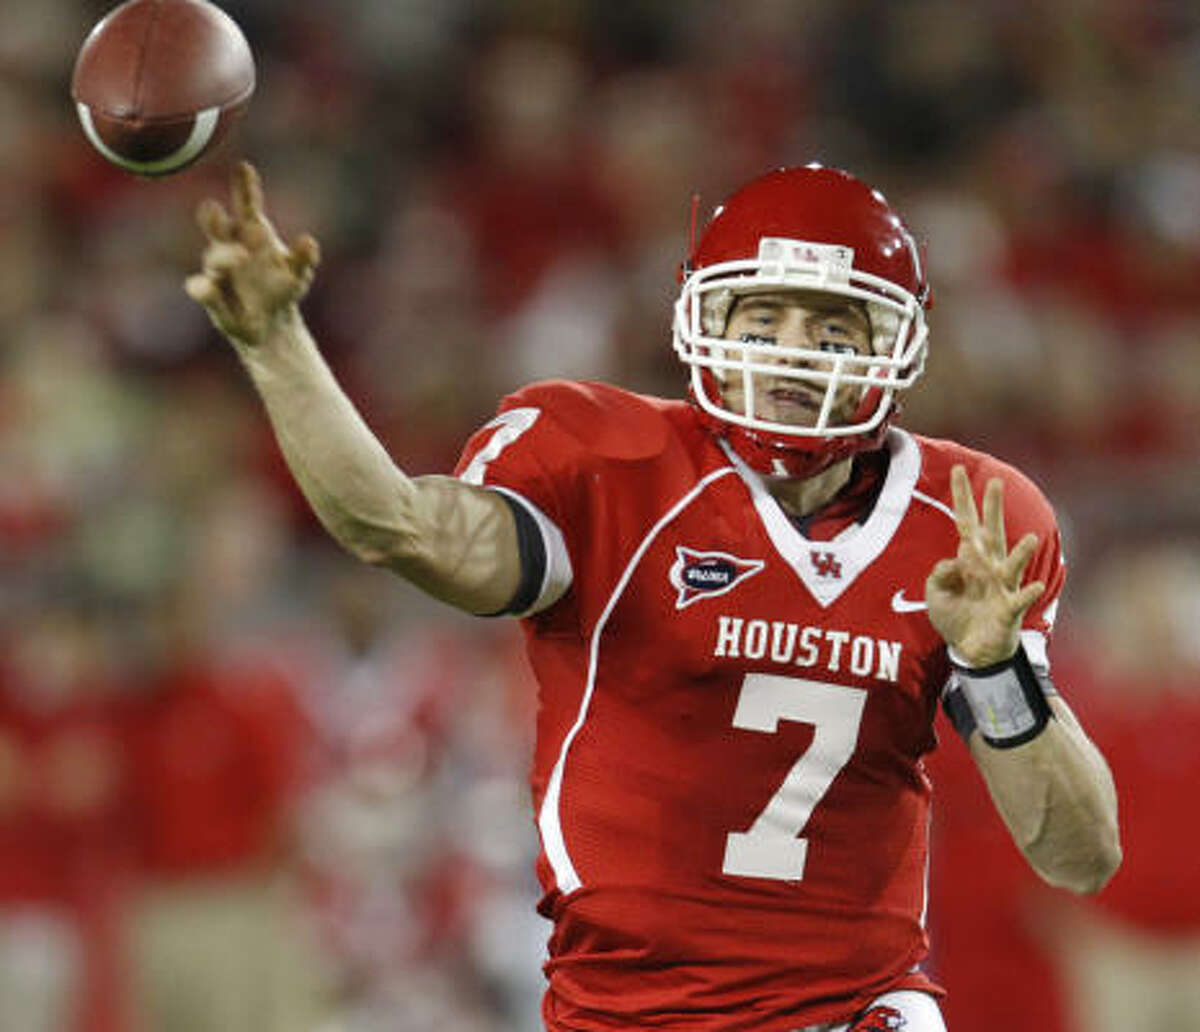 Case Keenum led the offense to one touchdown and one punt against the first-team defense.